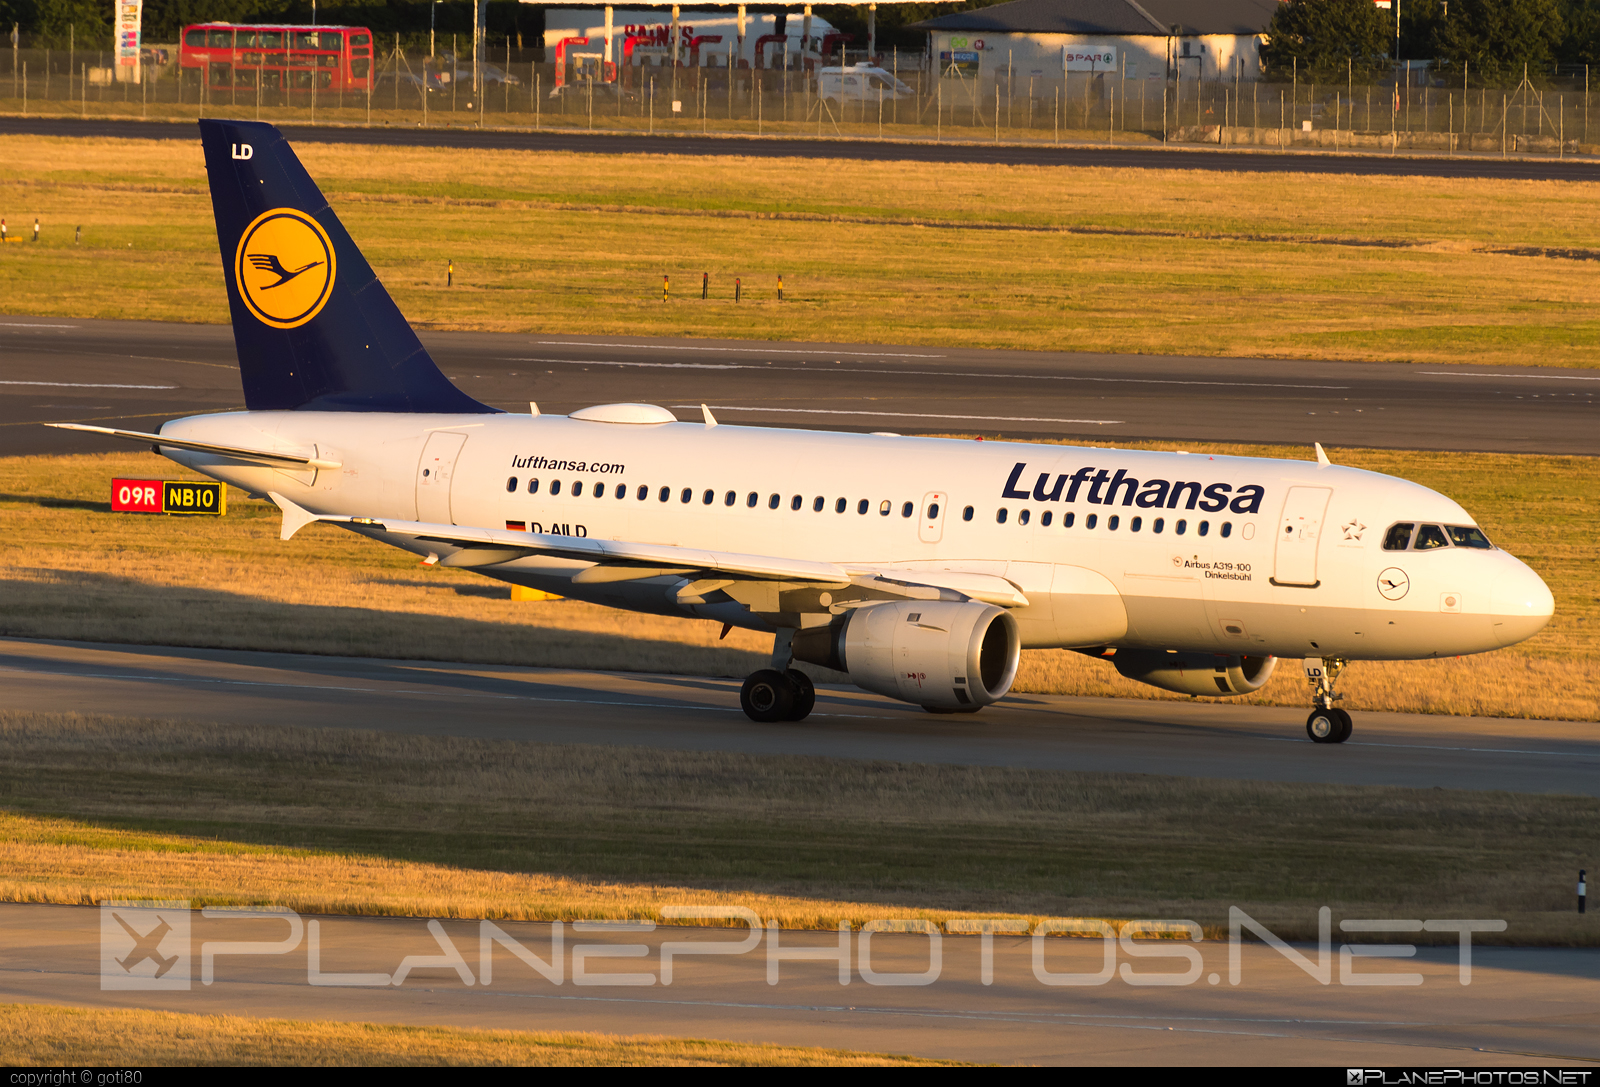 Airbus A319-114 - D-AILD operated by Lufthansa #a319 #a320family #airbus #airbus319 #lufthansa